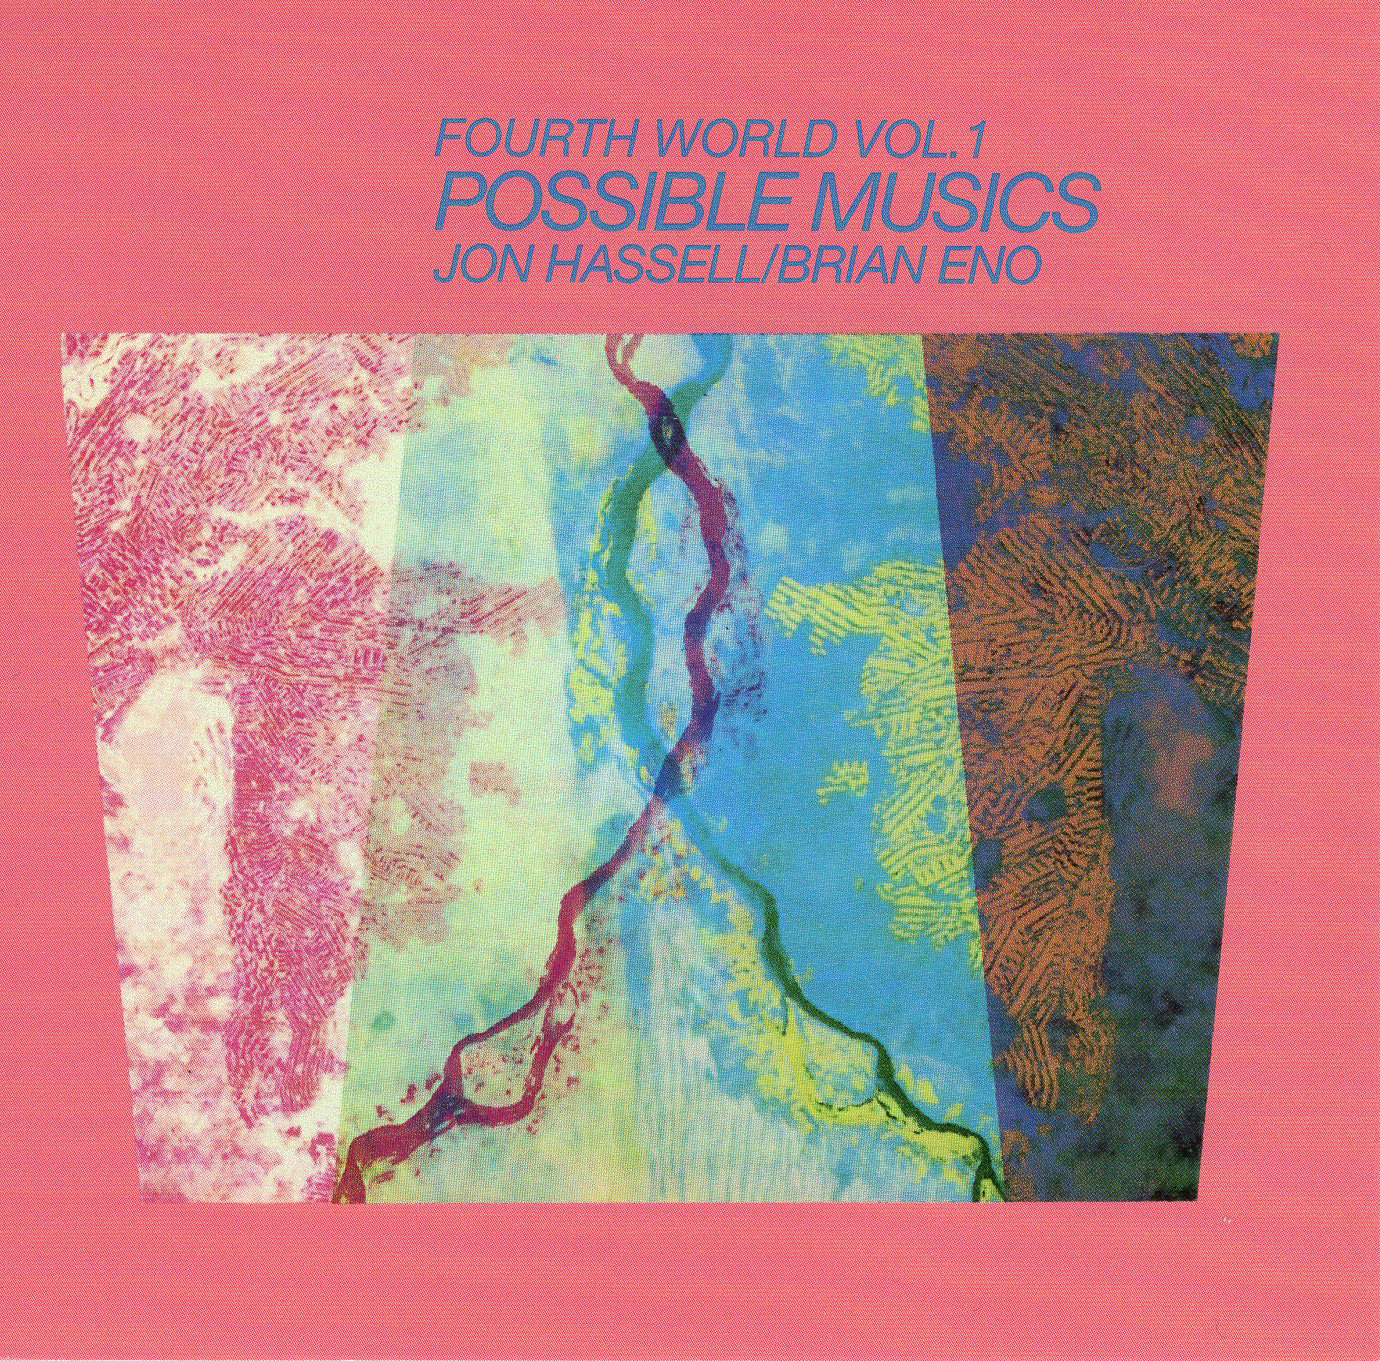 """Fourth World Vol.1 Possible Musics"" Brian Eno, Jon Hassell"